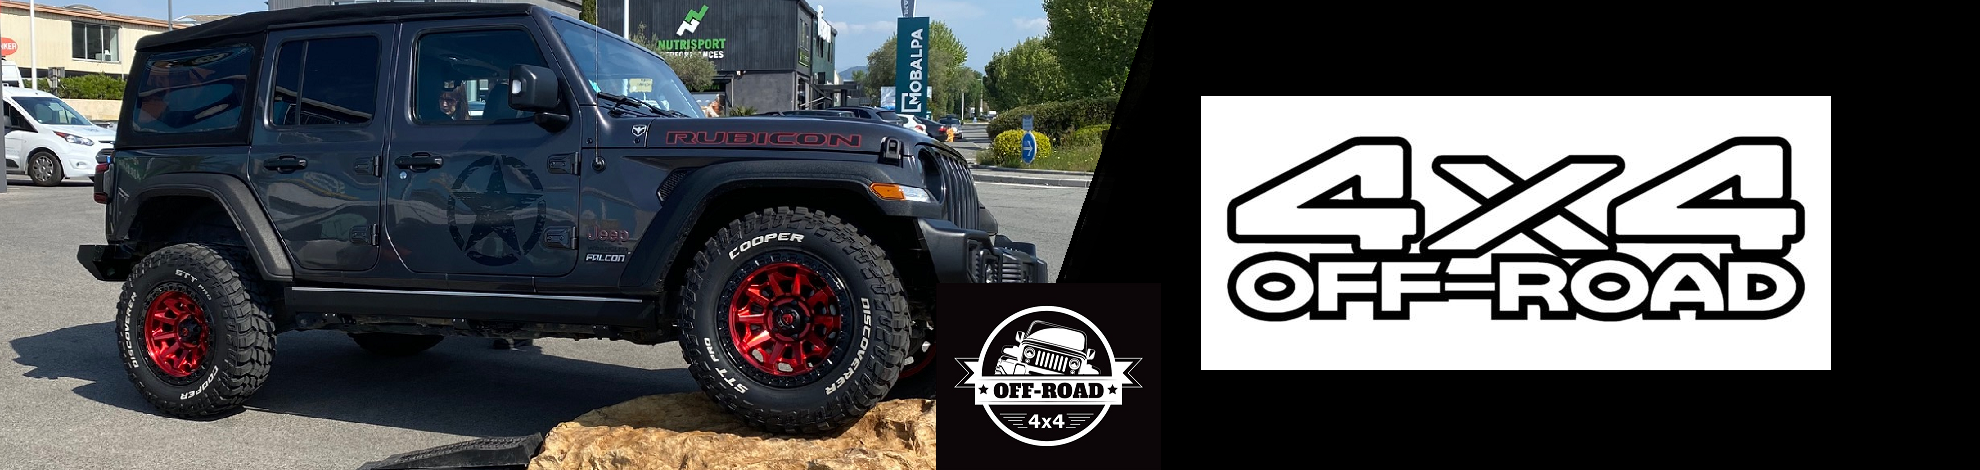 Banner-AC OffRoad-4x4-02